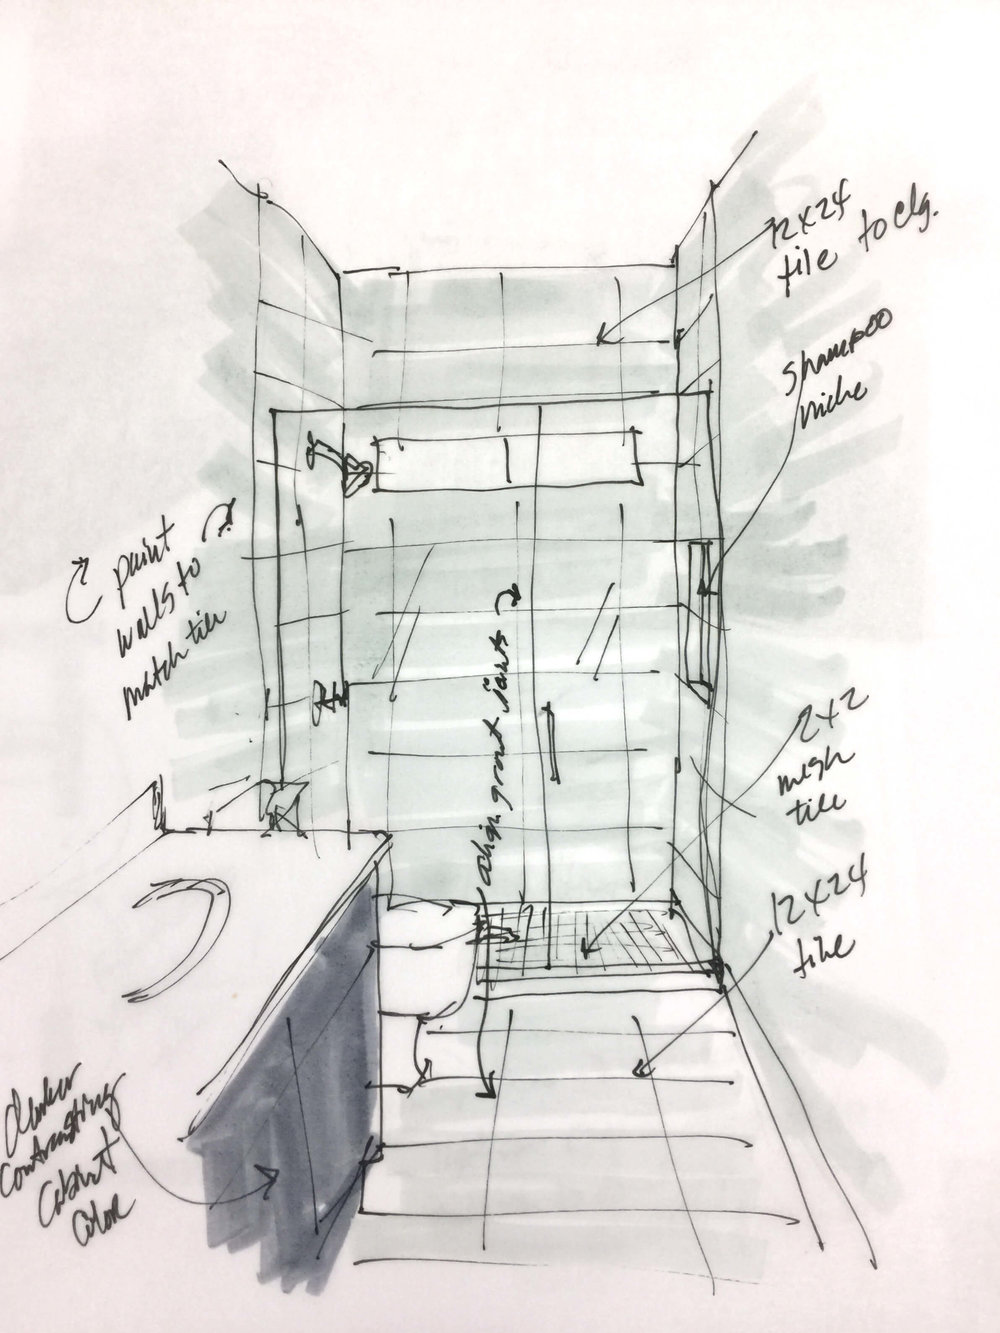 Quick sketch bathroom remodel idea replacing tub with walk in shower